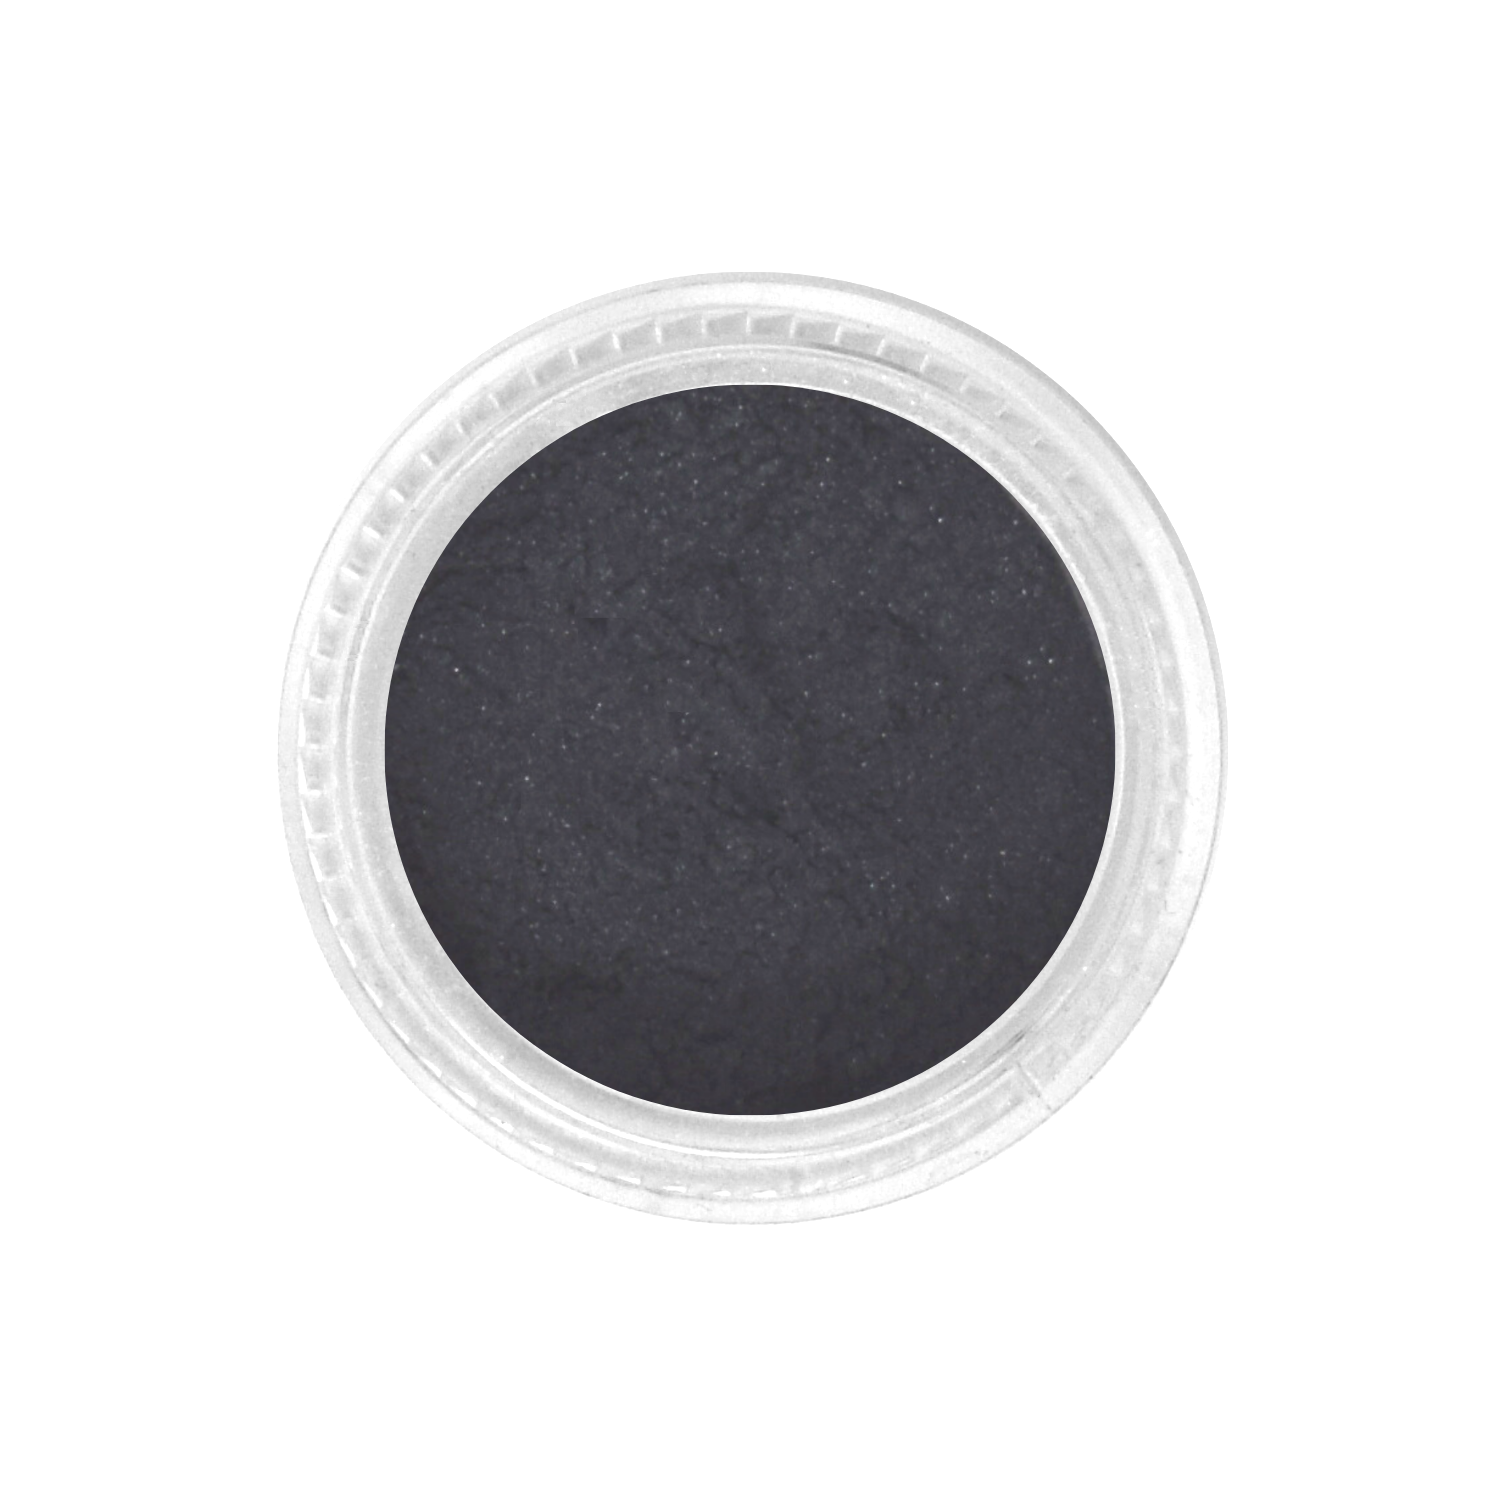 Loose Mineral Eye Shadow in Charcoal